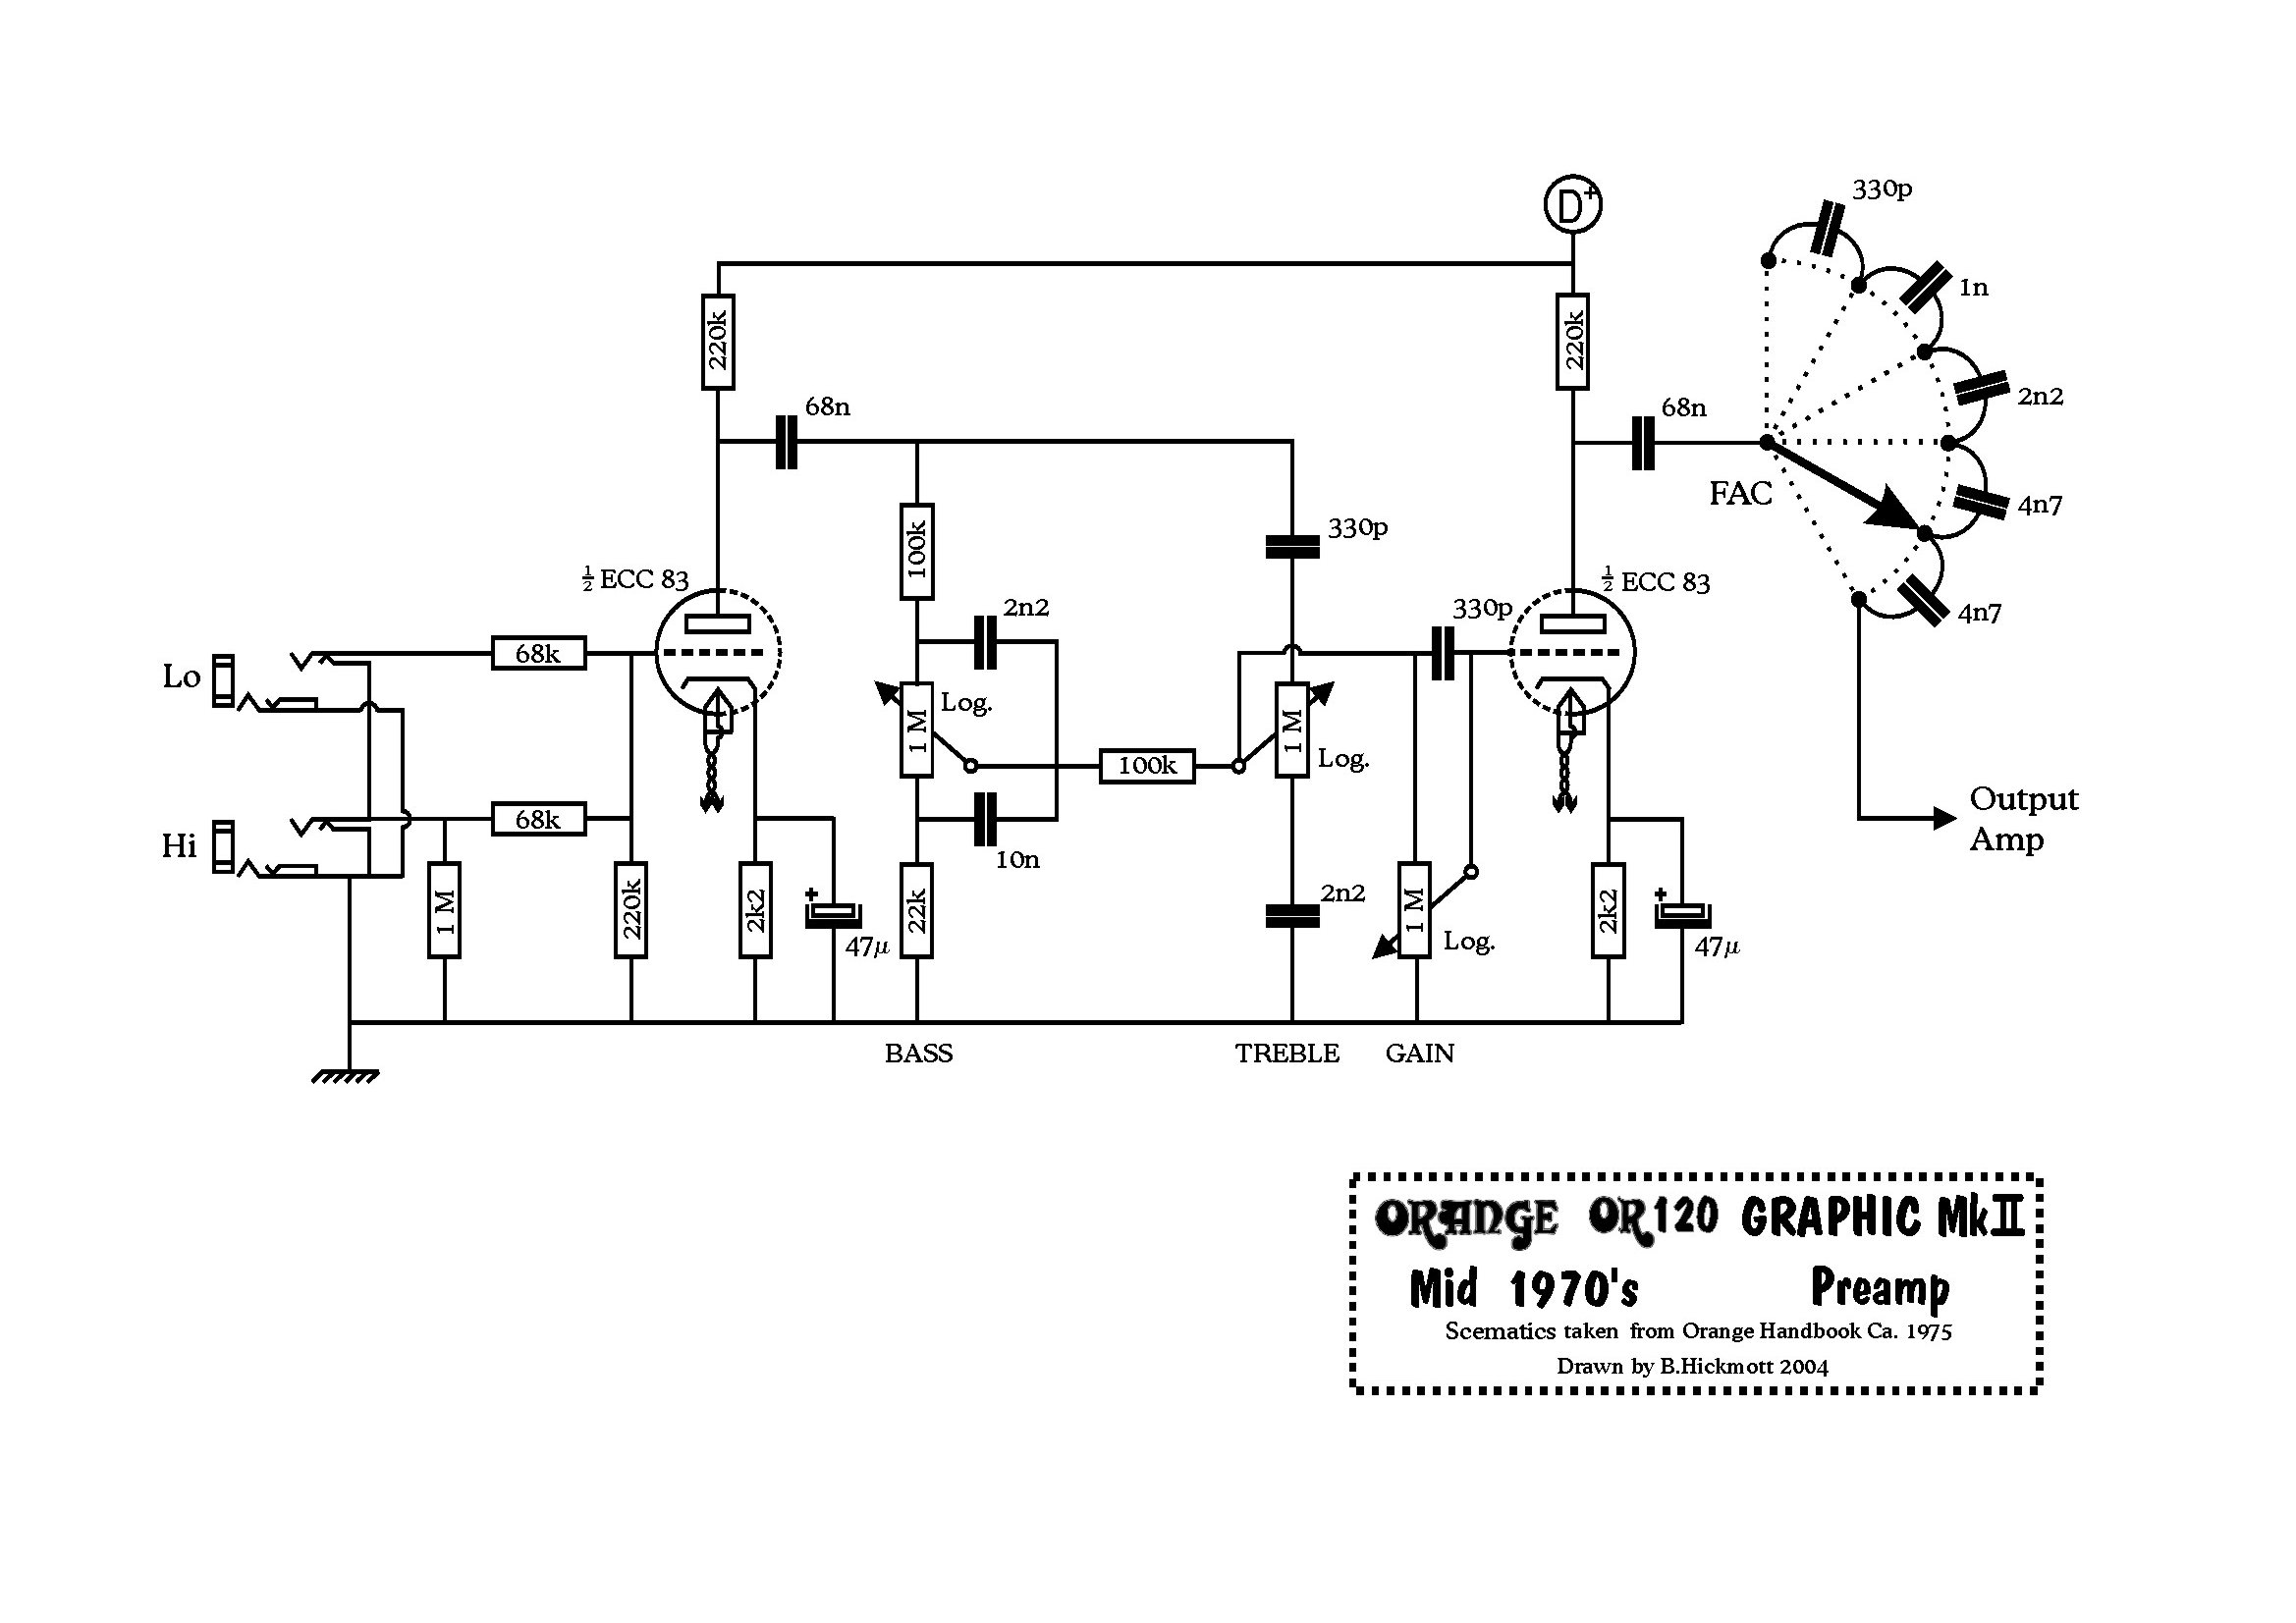 Orange Footswitch Wiring Diagram Massey Ferguson 235 Parts Amp Schematics Trusted Diagrams On Foot